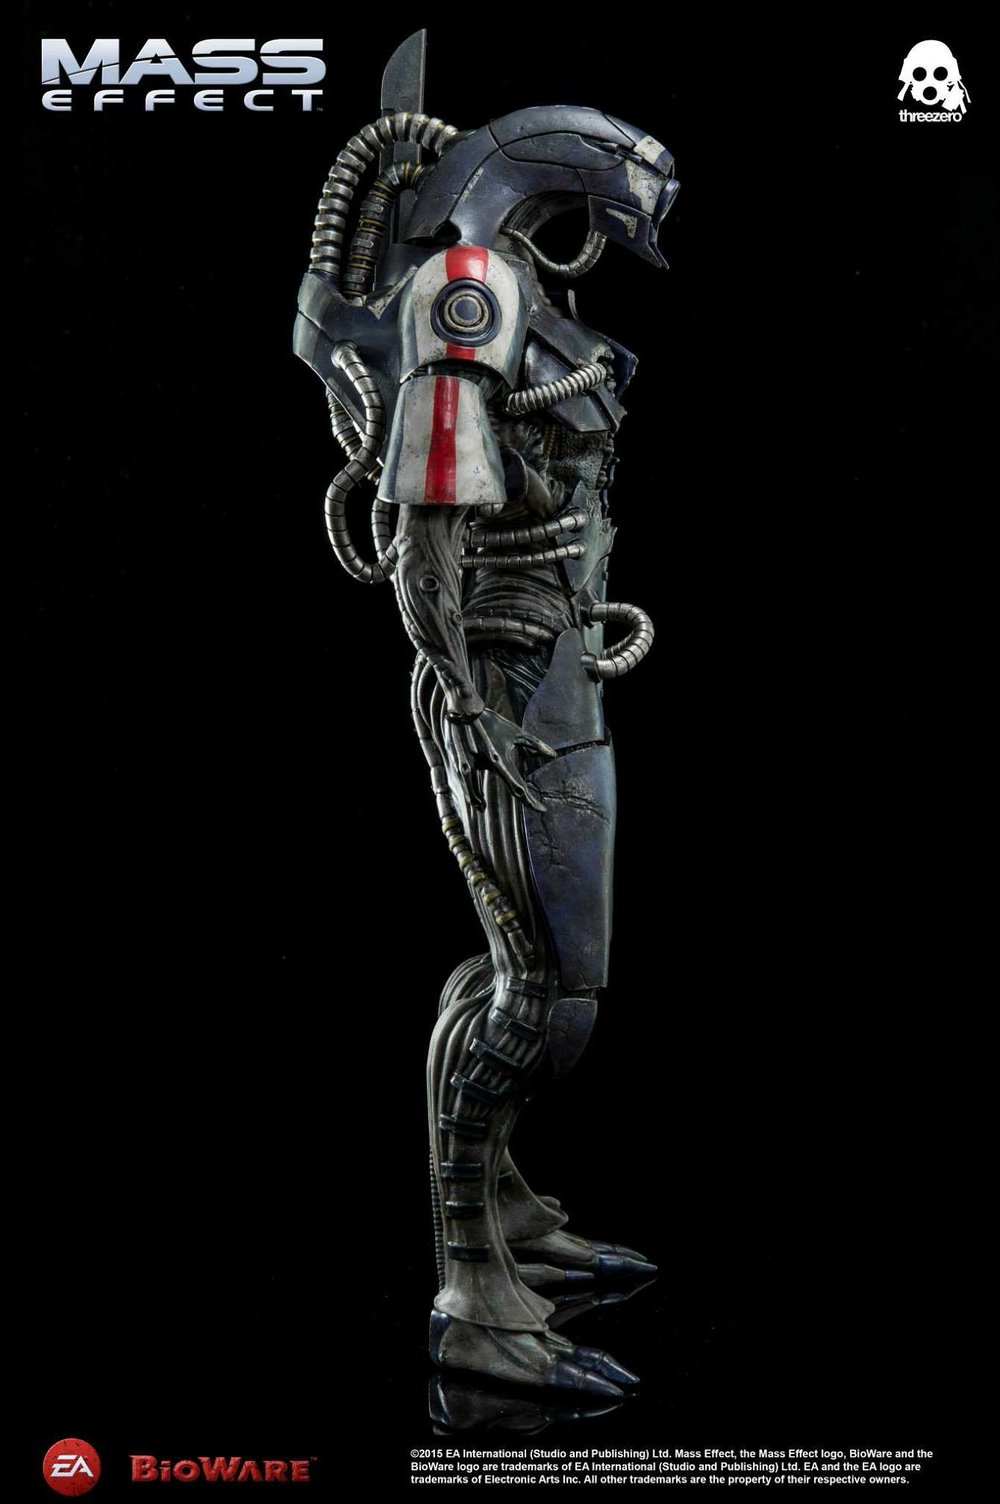 ThreeZero-Bioware-video-game-Legion-Mass-Effect-figure-13_1340_c.jpg